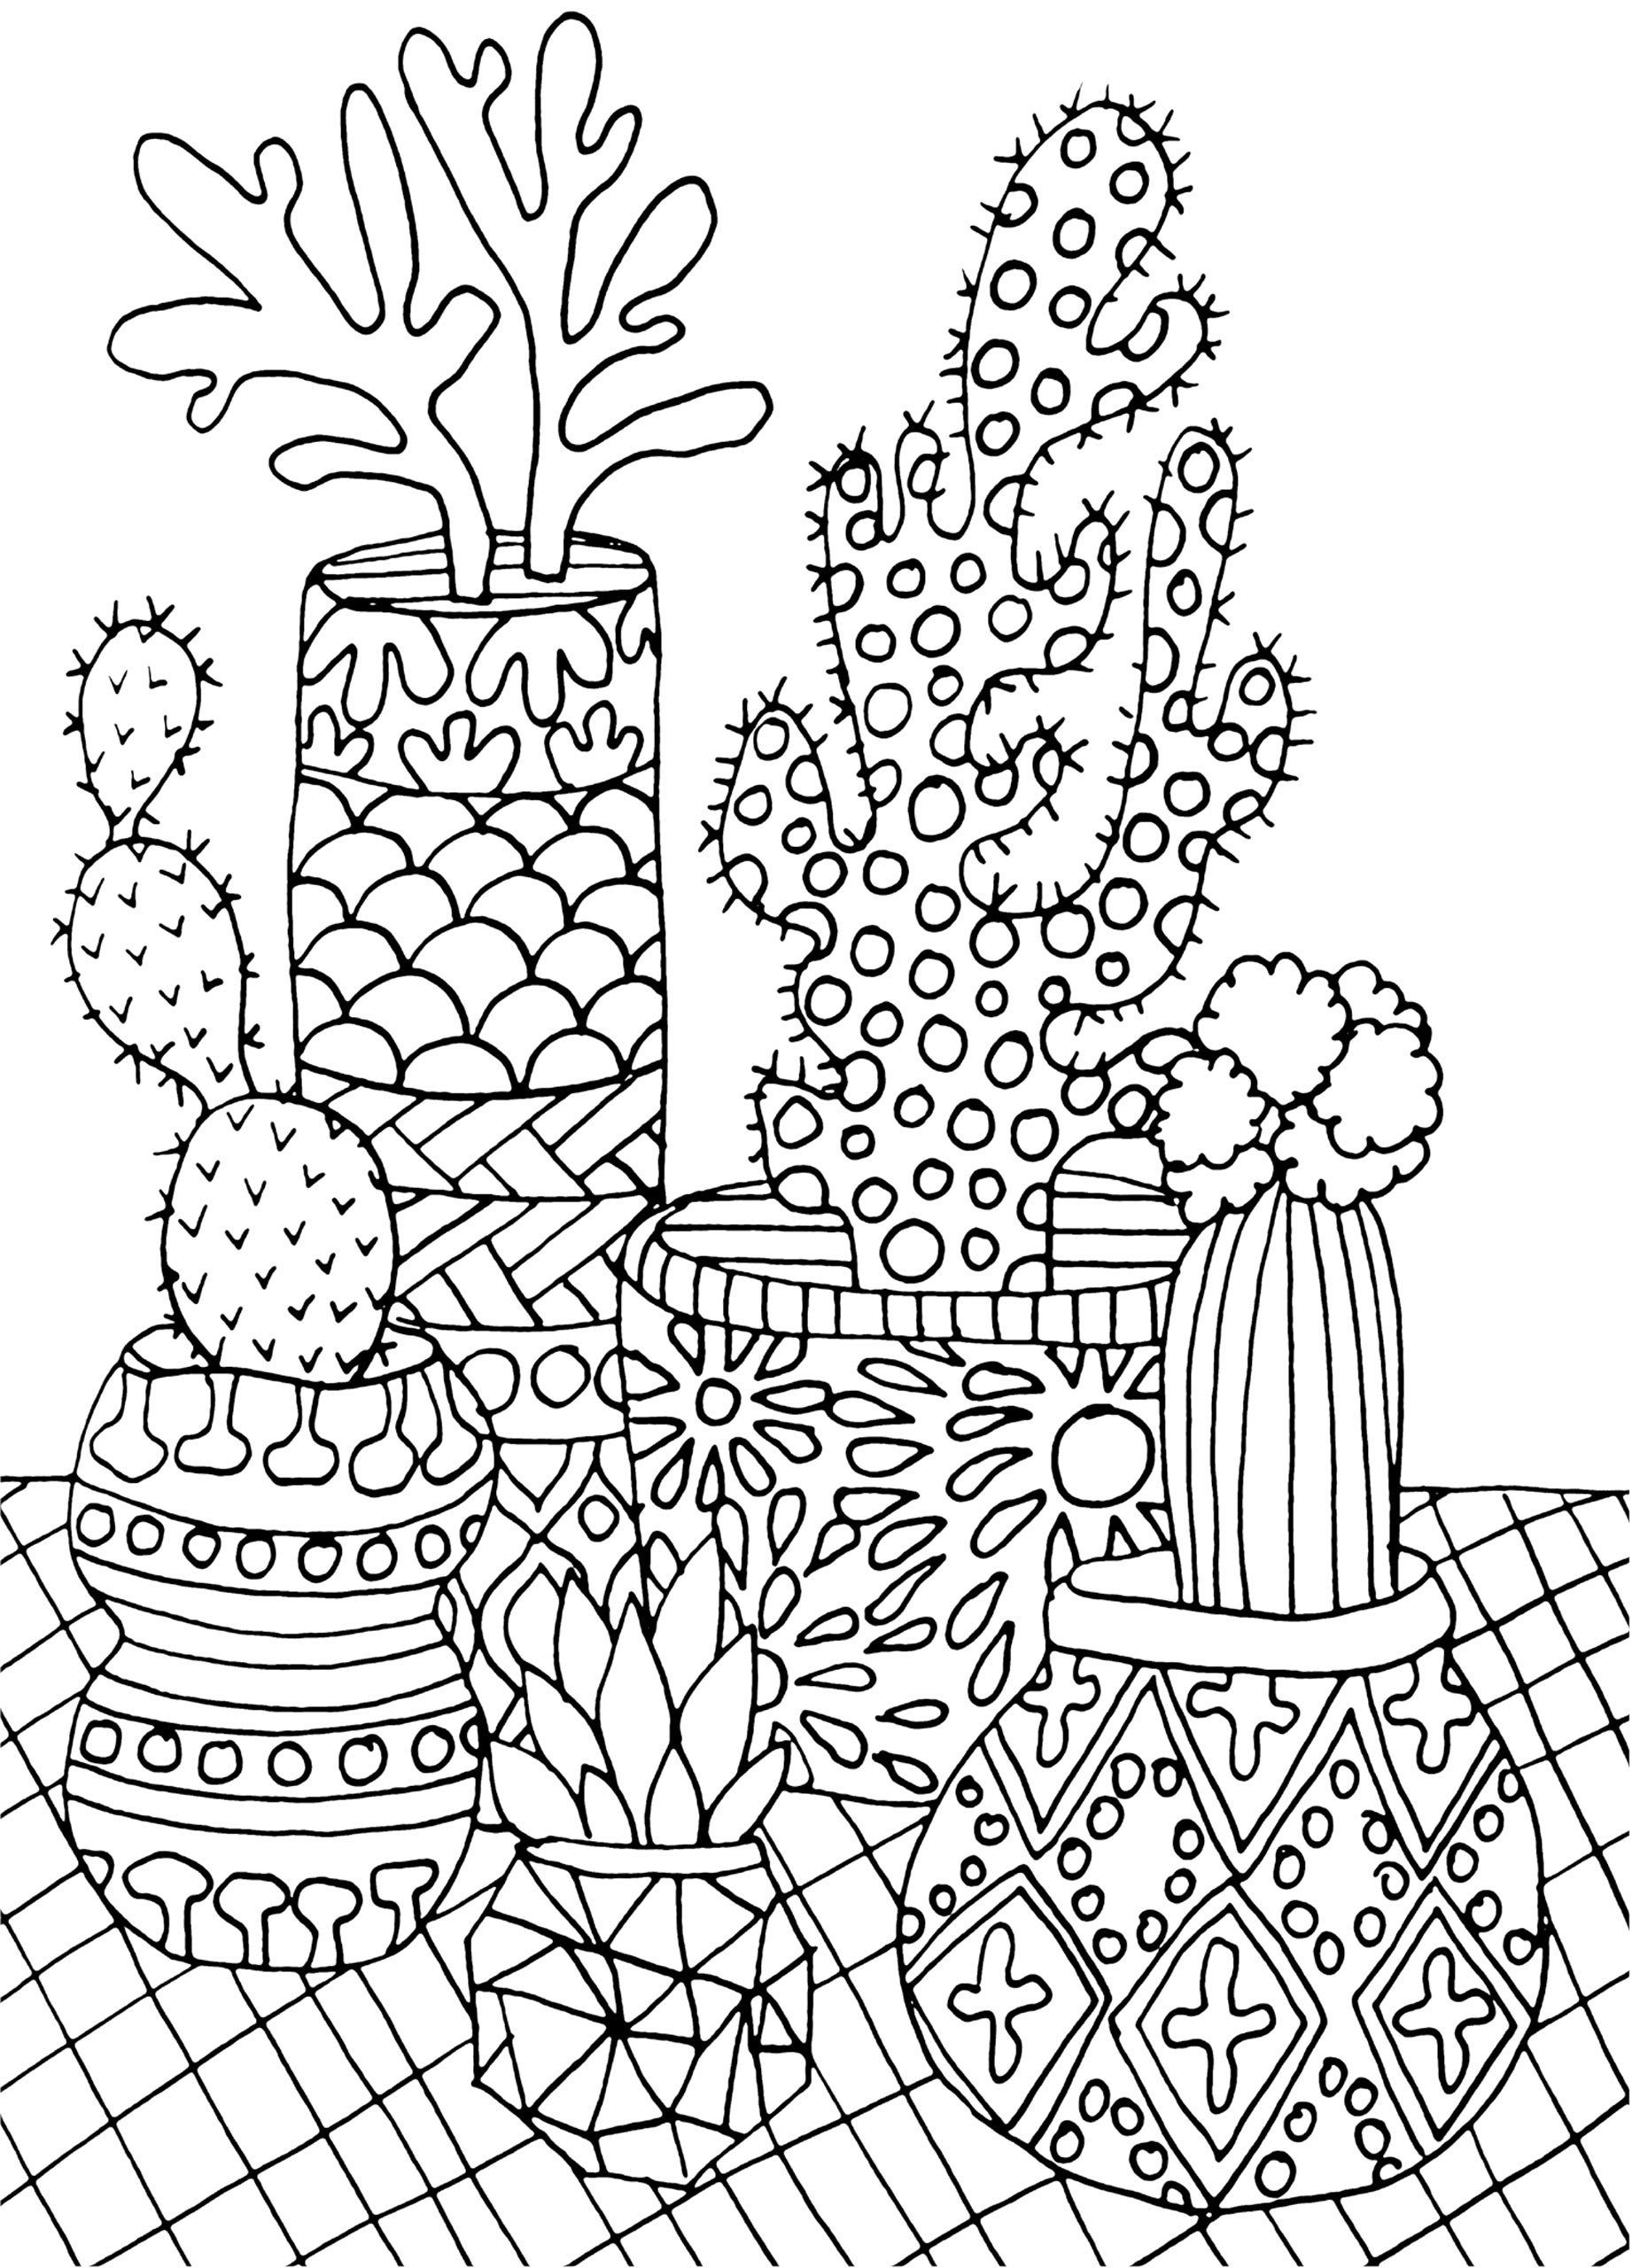 Amazonsmile Succulents Portable Adult Coloring Book 31 Stress Relieving